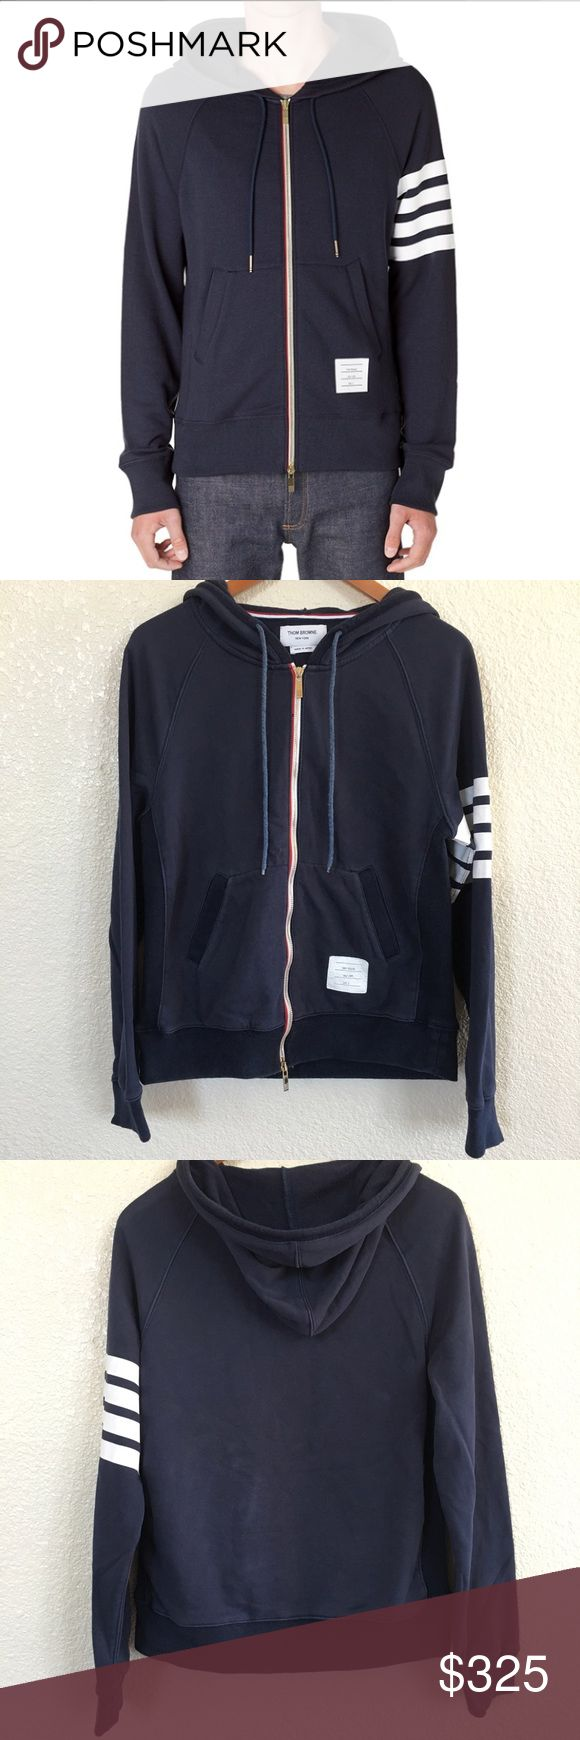 Thom Browne Full Zip Hoodie- Classic 4 Bar Stripes Regular Price $735. Navy 100% cotton full zip hoodie with classic four bar stripes. Gold zipper.Red white and blue grosgrain ribbon detailing. Kangaroo pockets. 3 inch side ribbing. Drawstring for hoodie (faded). Laundry tag size 3. No staining. No snags. Slight distressing around collar. Underarm to underarm: 20.5 inches. Length: 24 inches. Sleeve length: 19 inches. Thom Browne Sweaters Zip Up